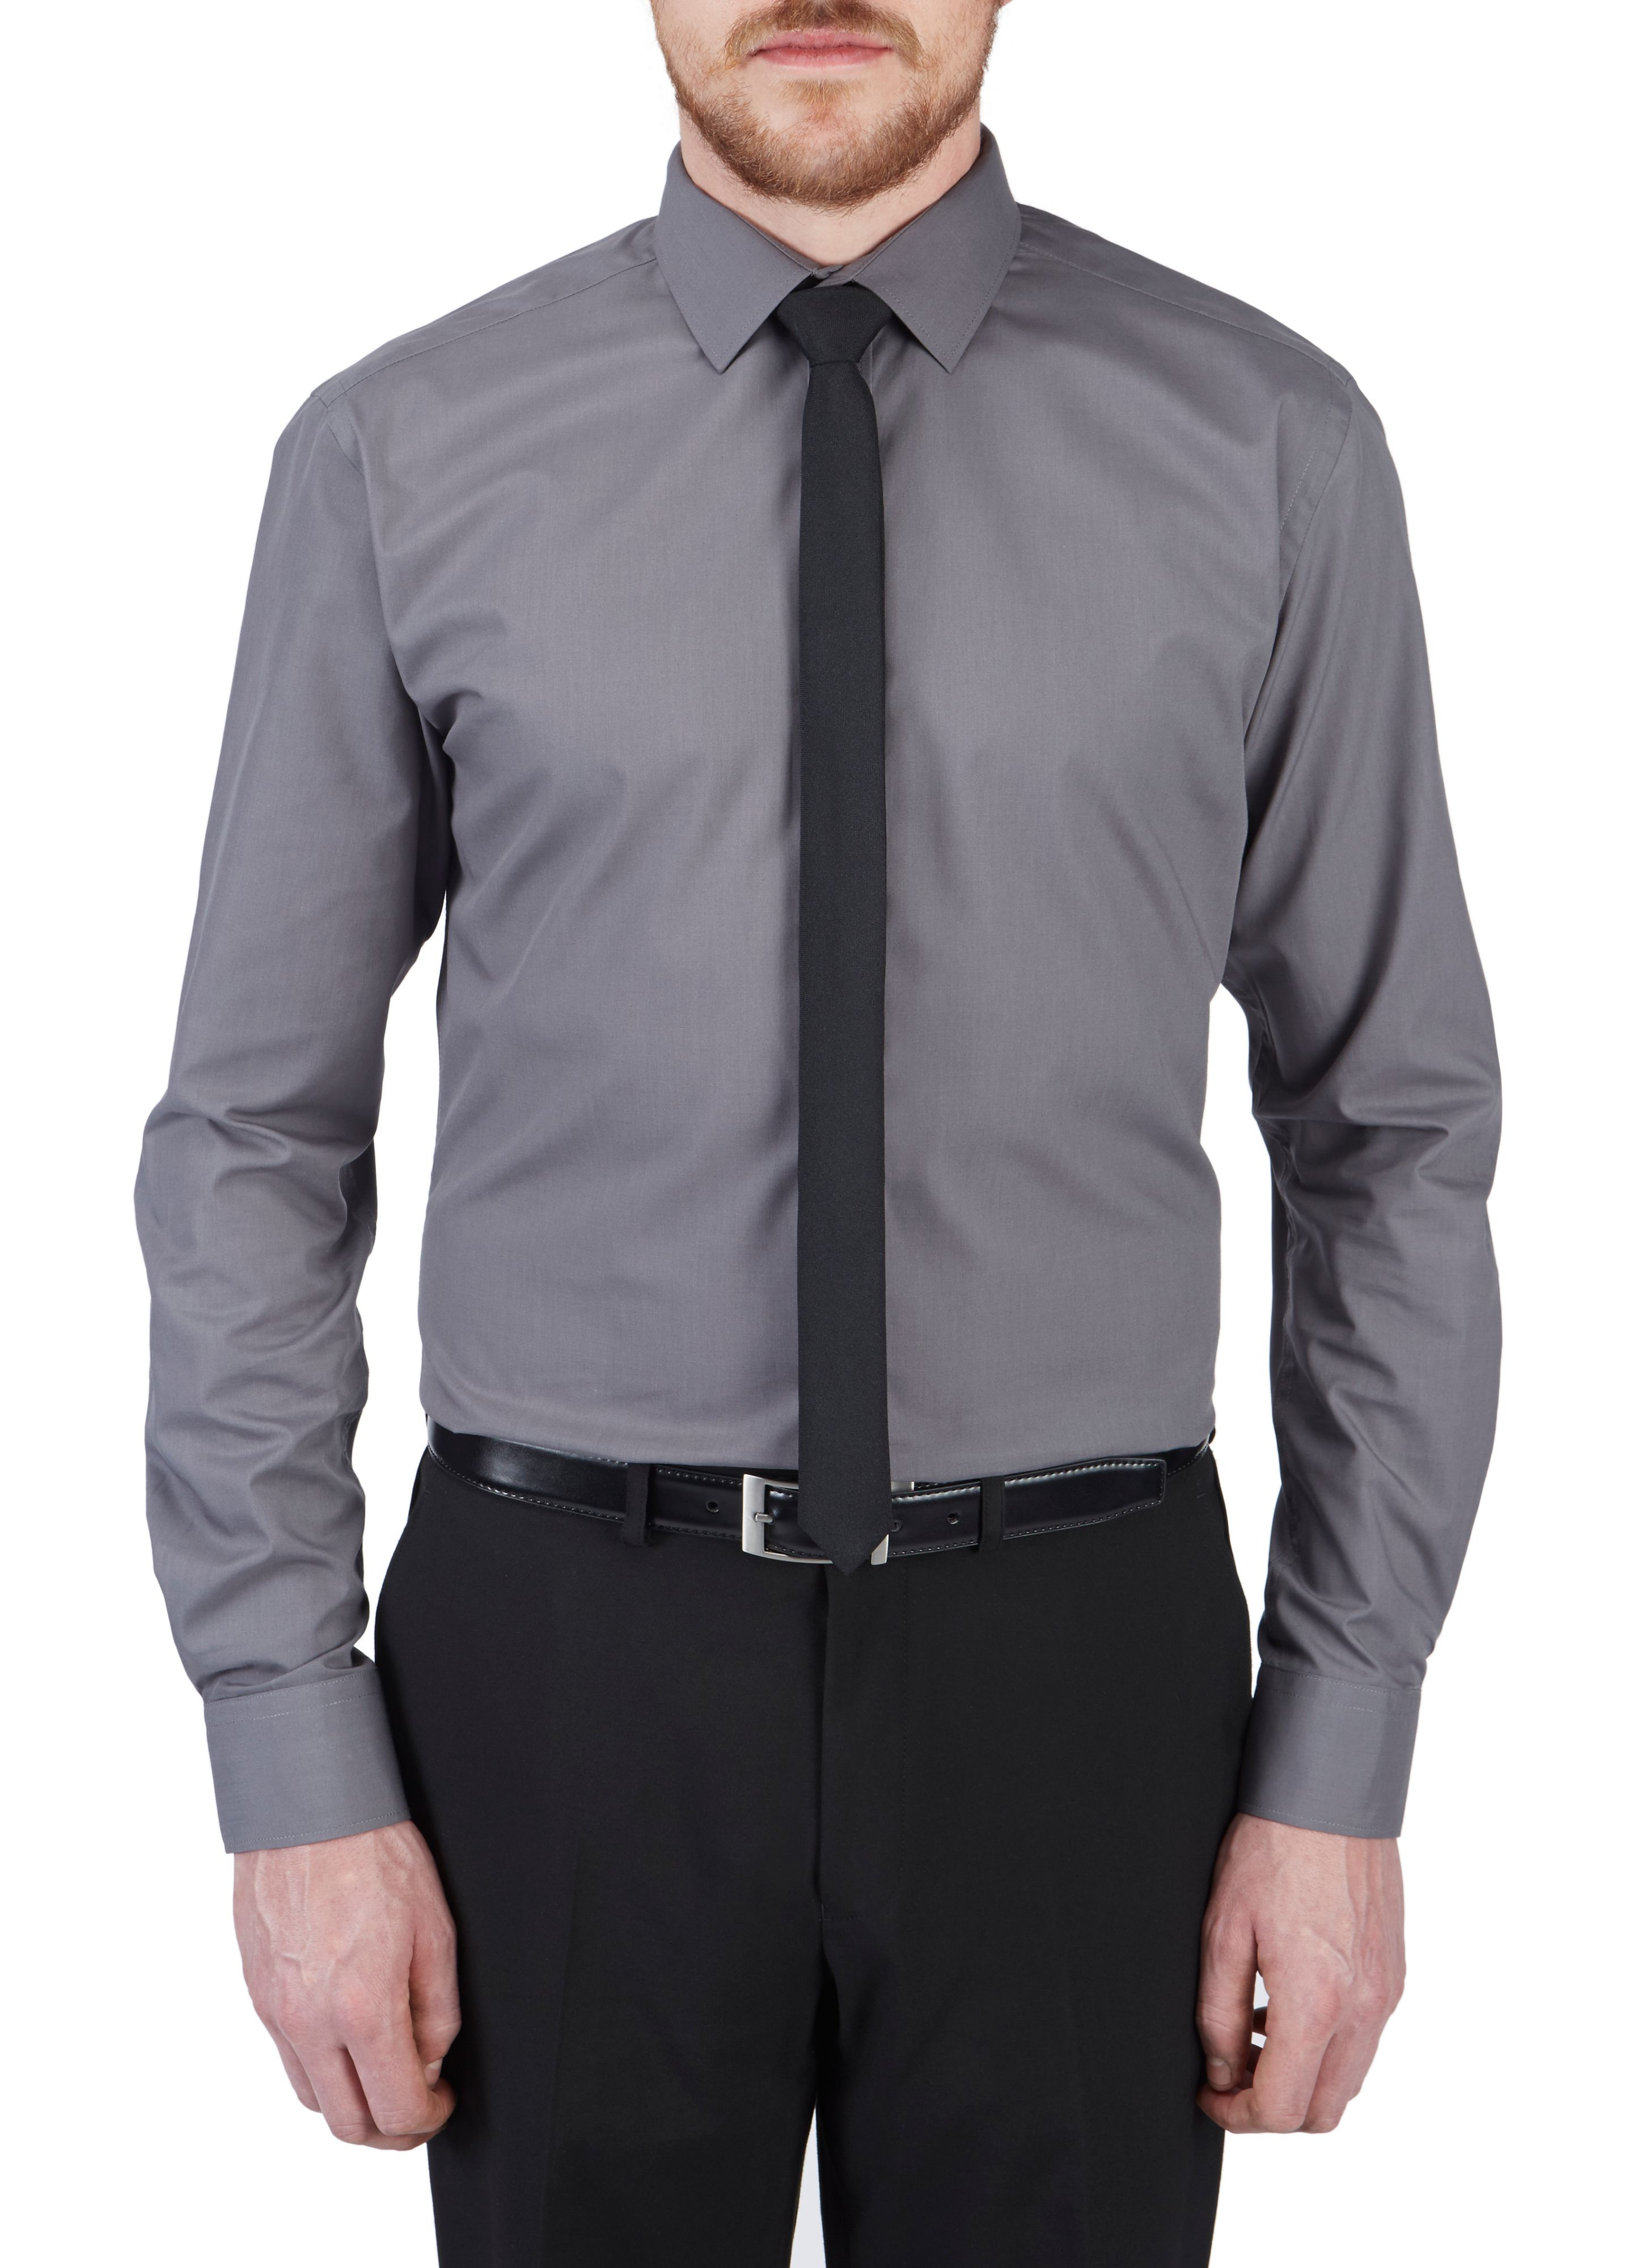 Lyst - Skopes Contemporary Collection Shirt Tie Set in ... - photo#11